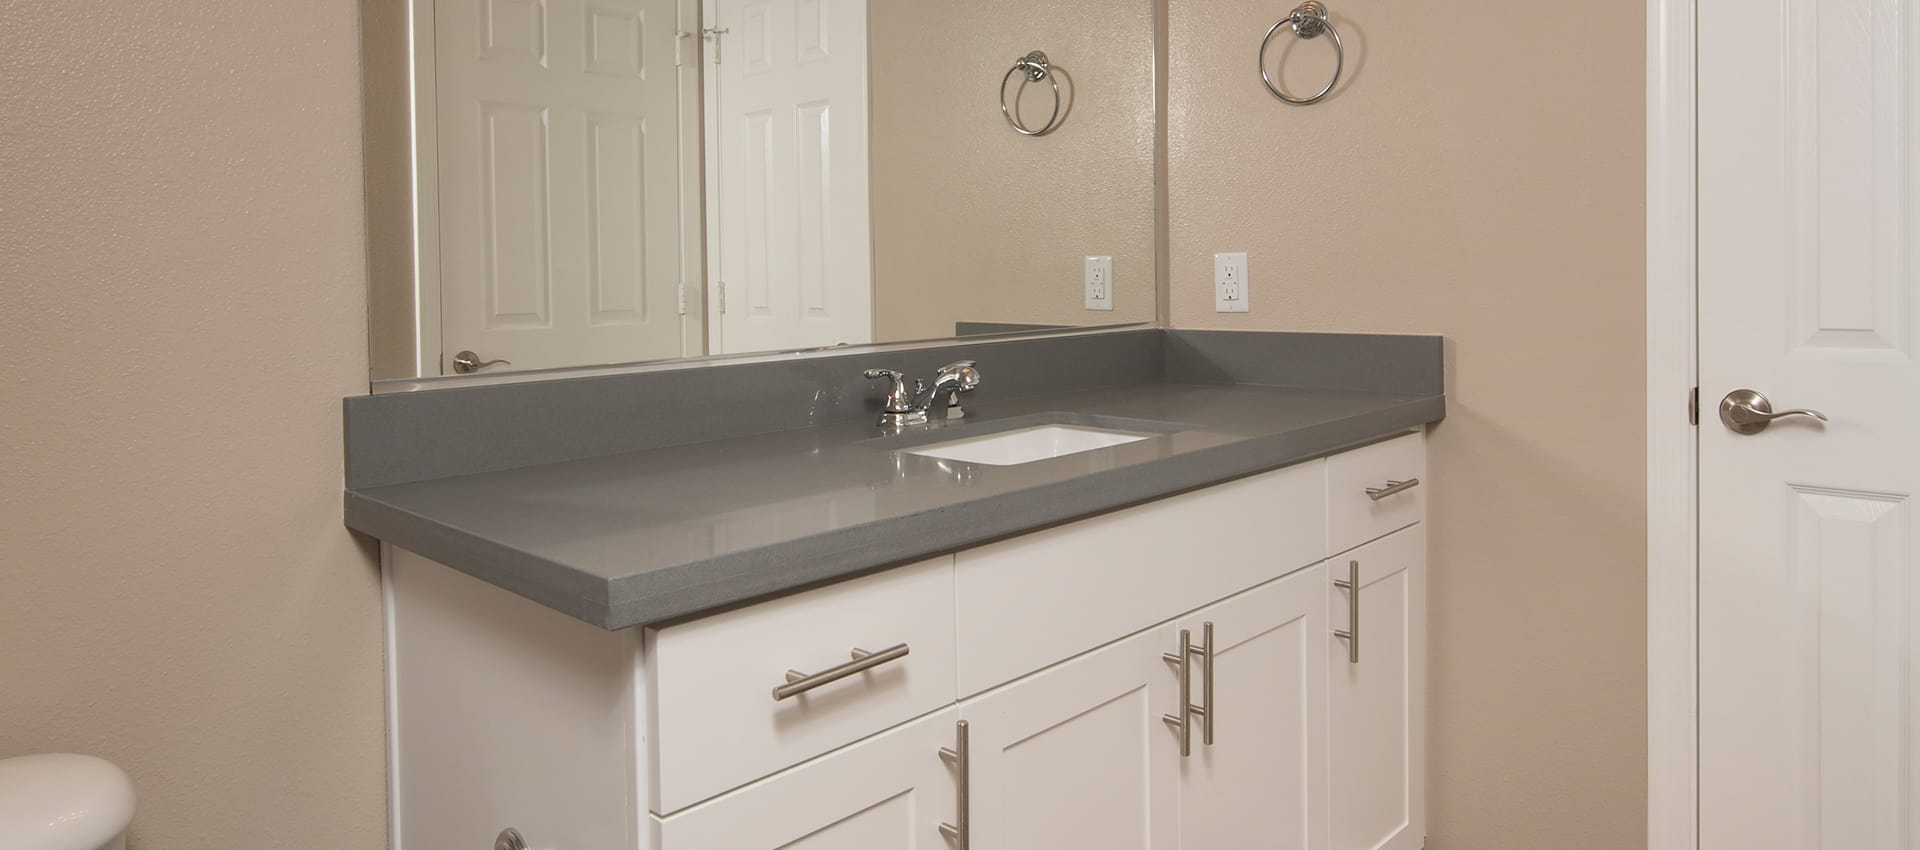 Kitchen sink with white cabinetry at Esplanade Apartment Homes in Riverside, California